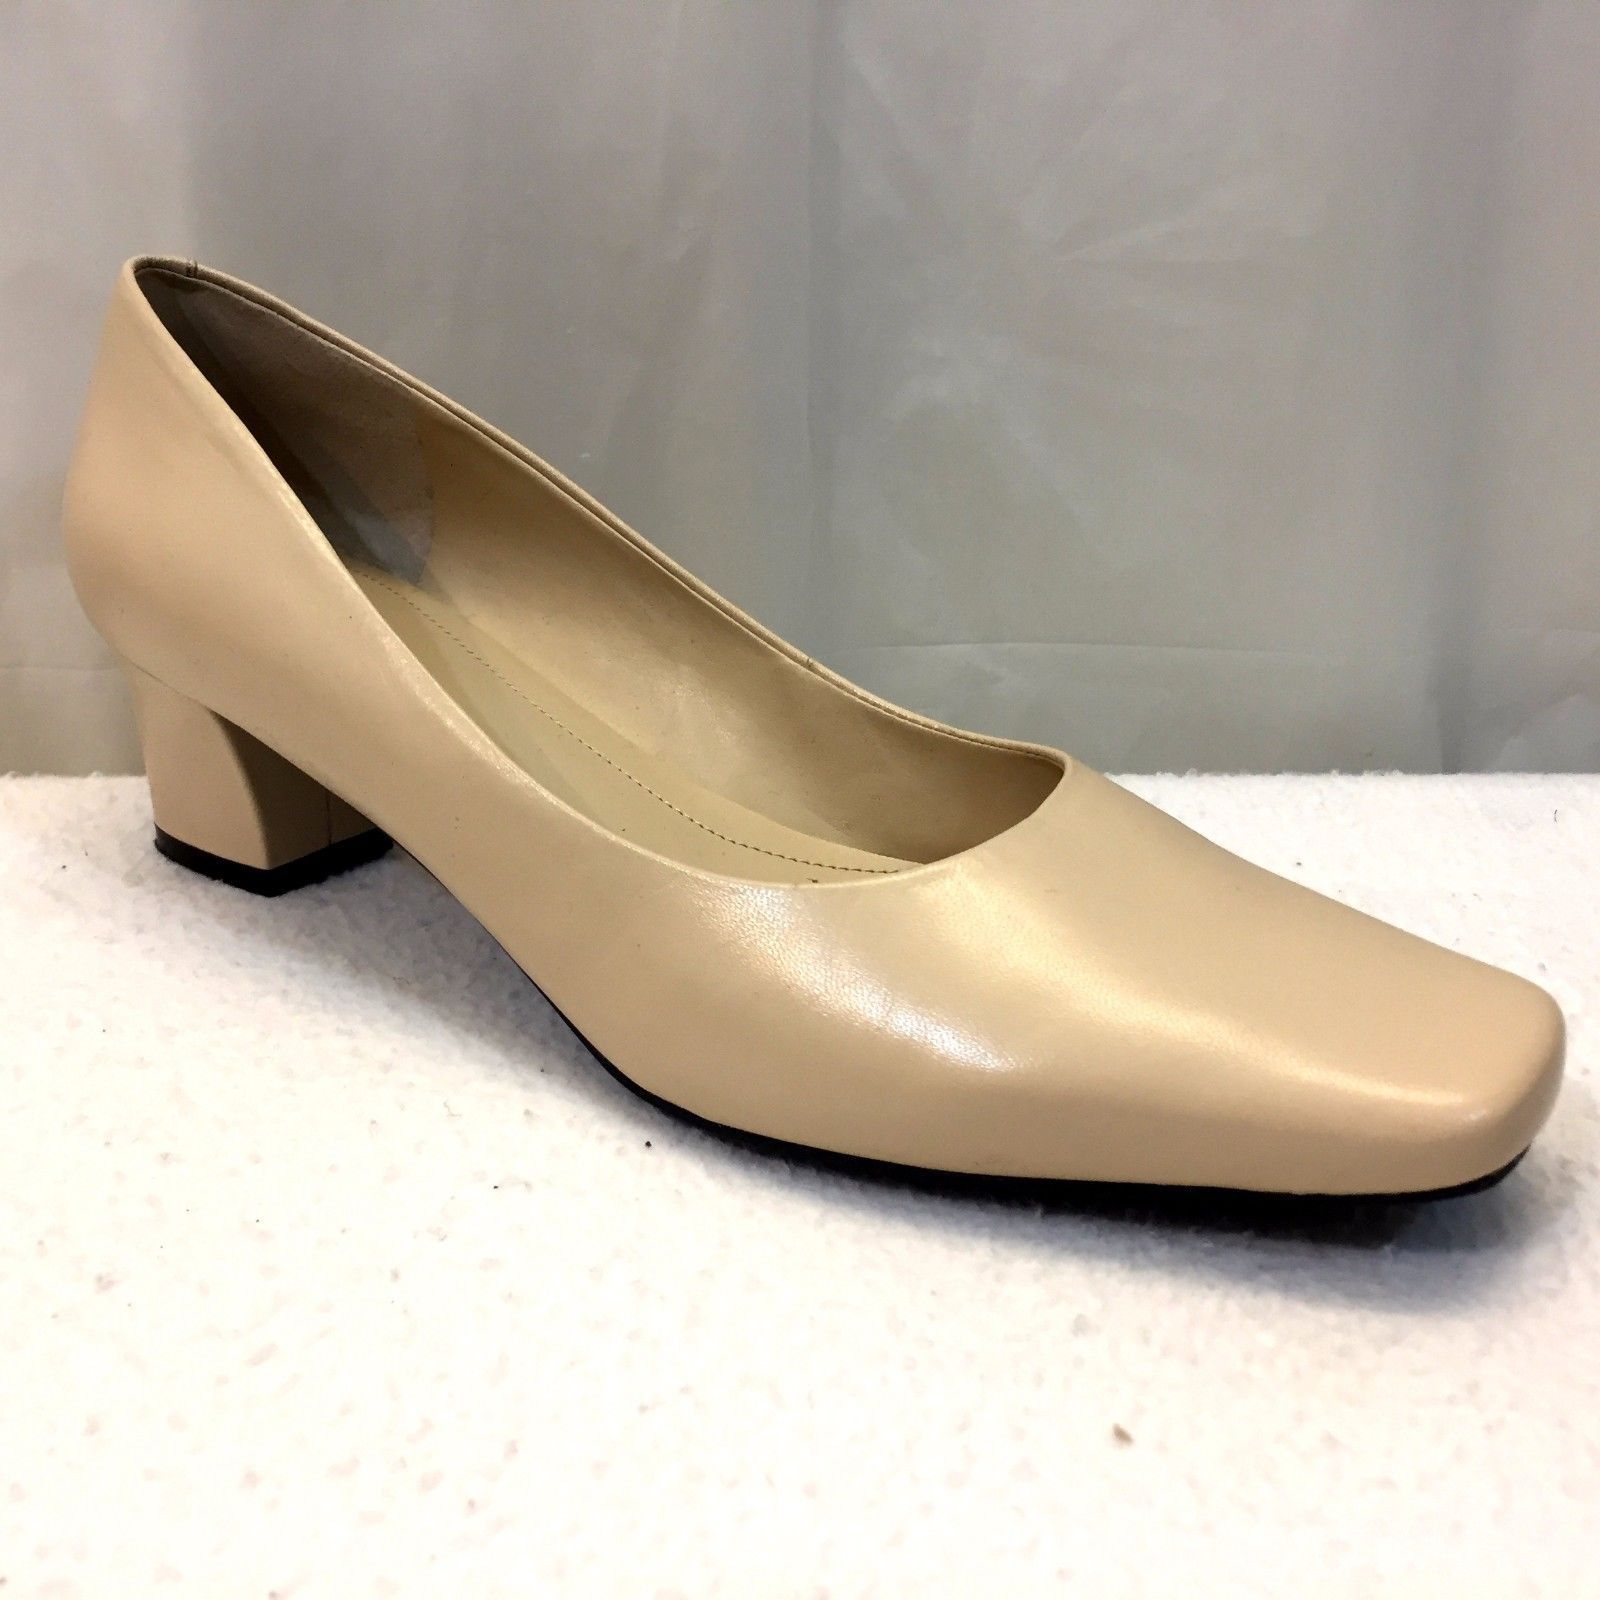 188d1542005 Easy Spirit Pumps Size 8 W Cream Nude and similar items. S l1600